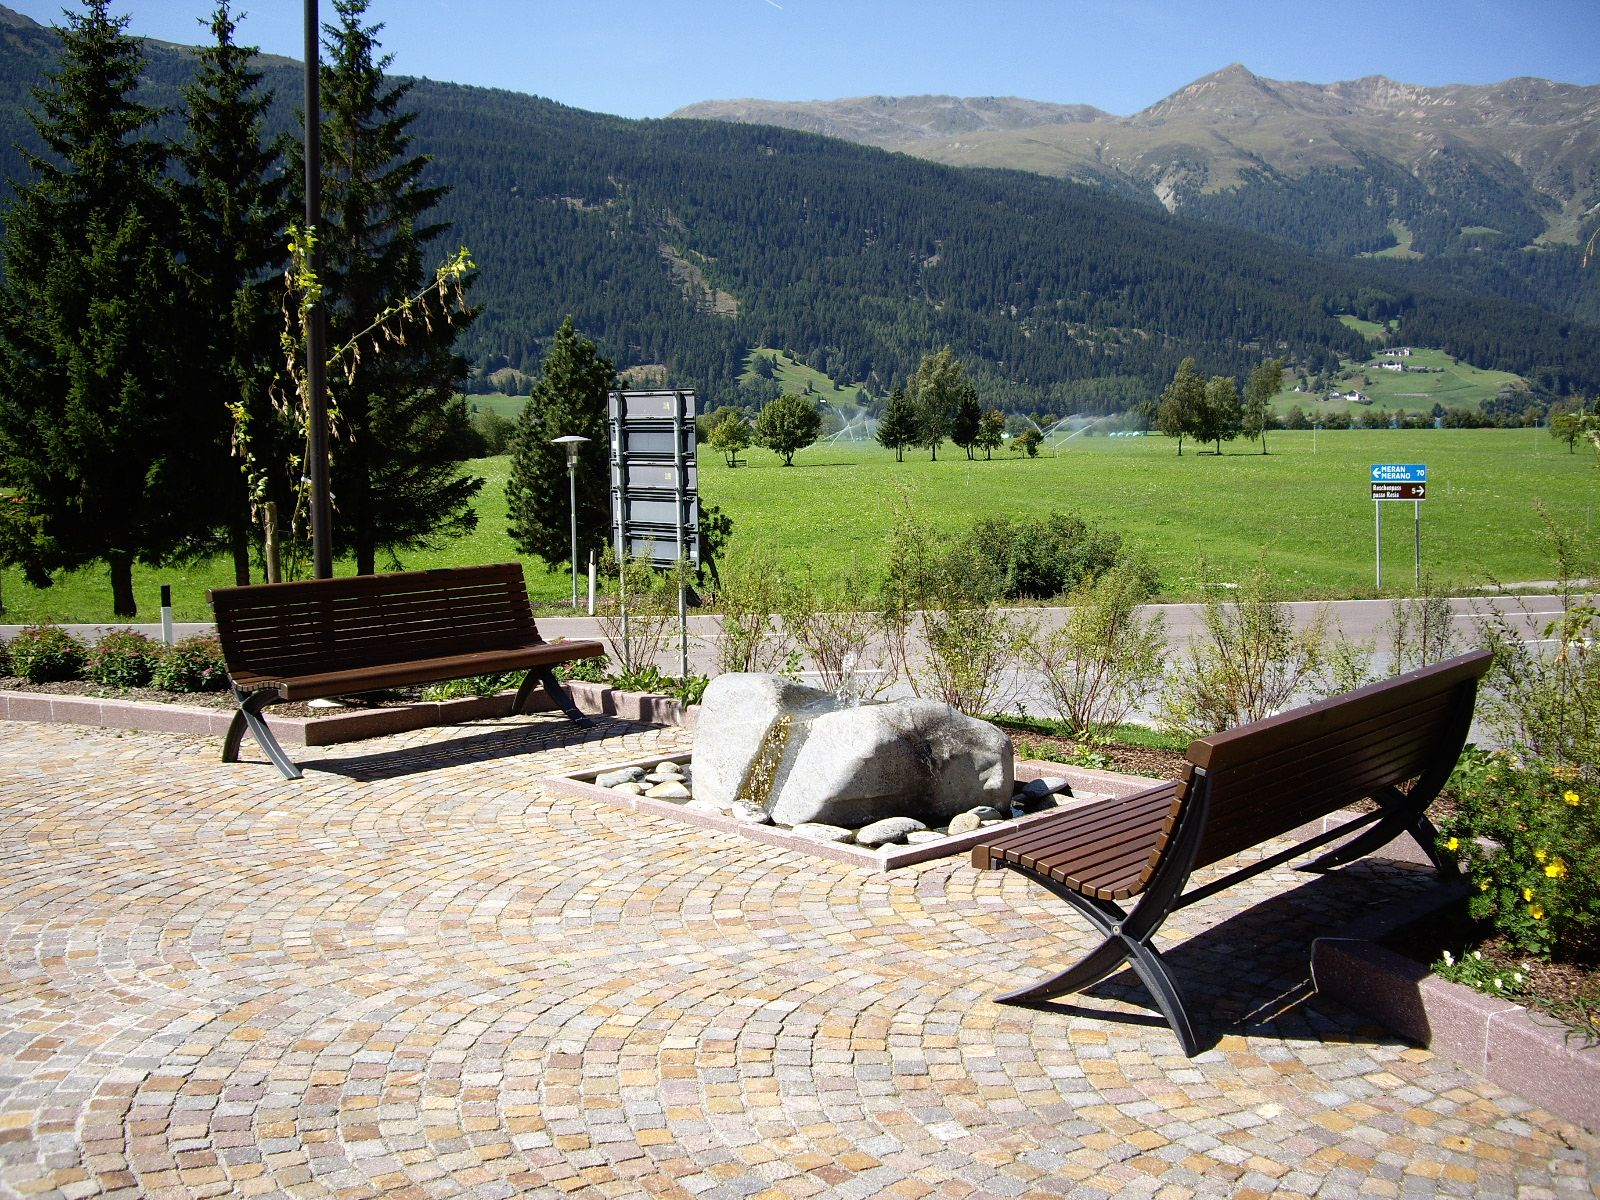 euroform w - urban furniture - park bench wood - seating - Palazzo